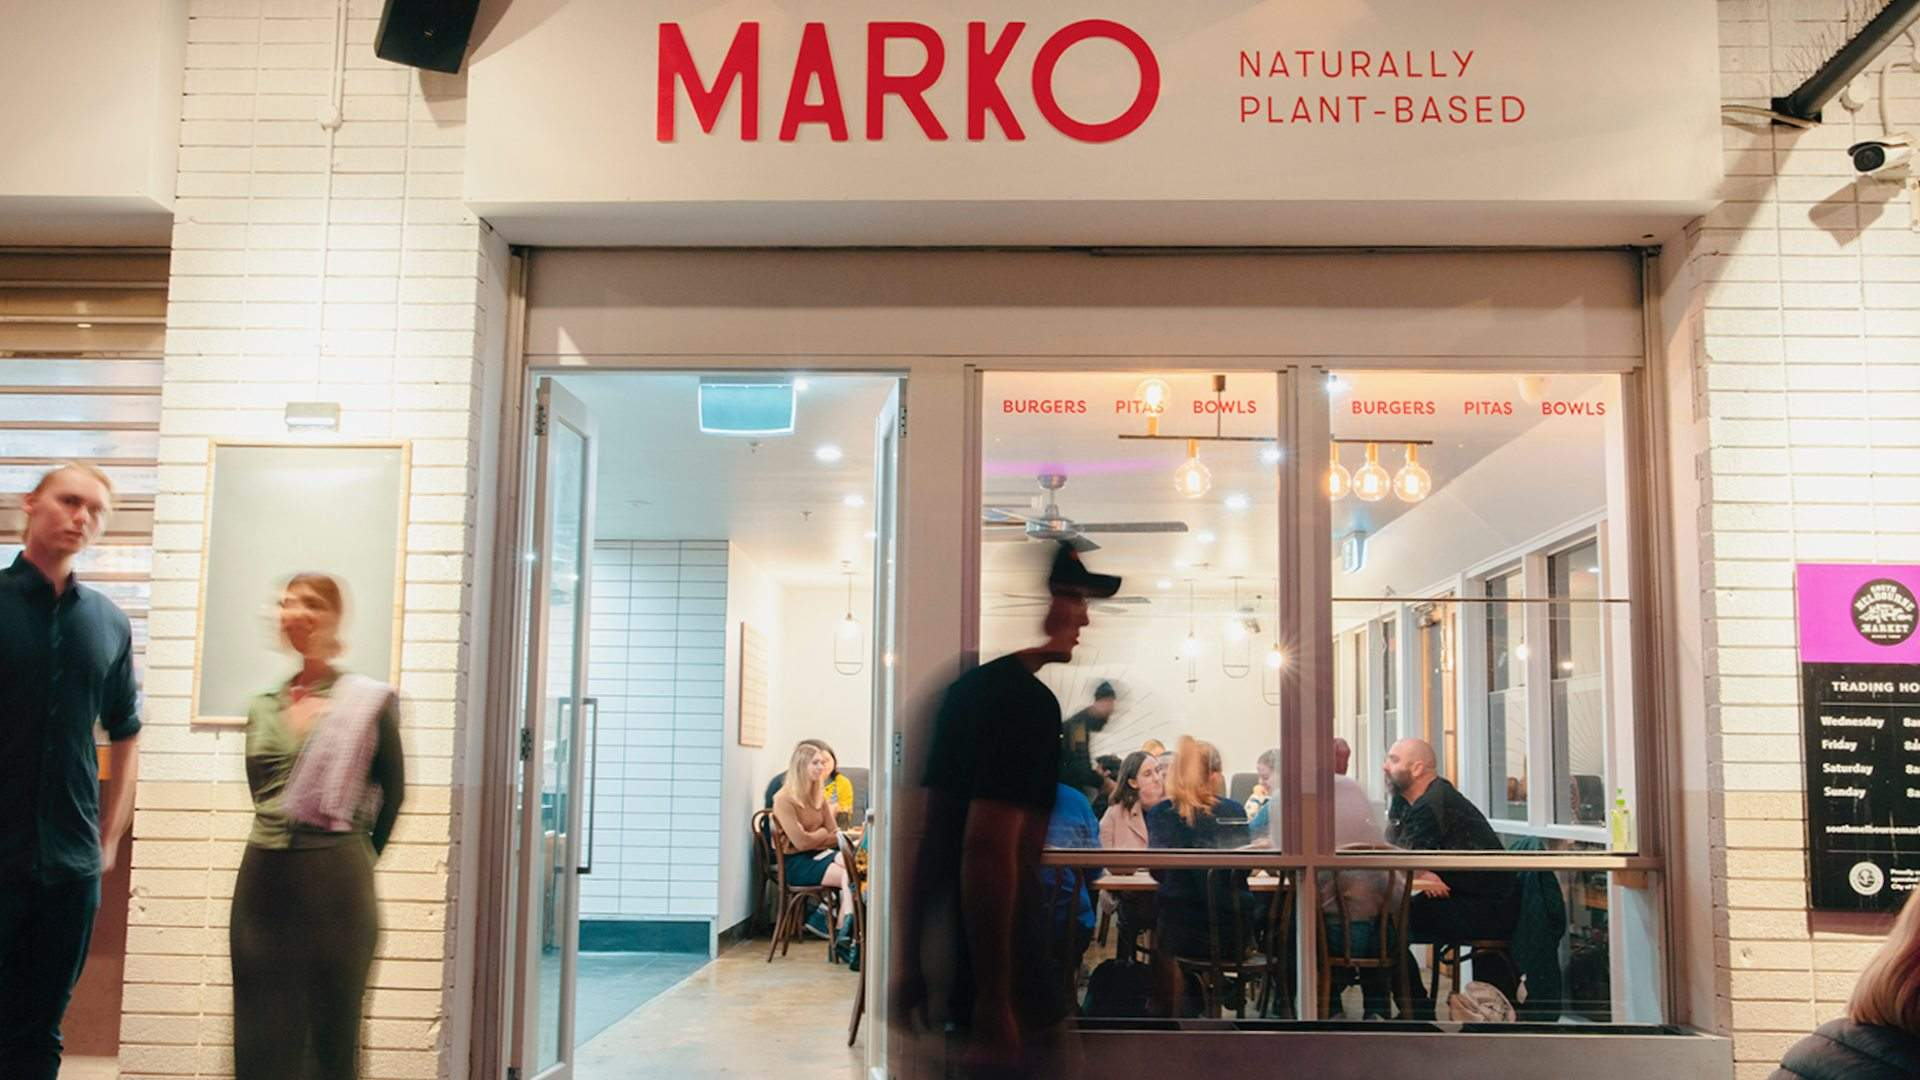 Marko Is South Melbourne Market's New Plant-Based Lunch Spot For Pitas, Burgers and Bowls